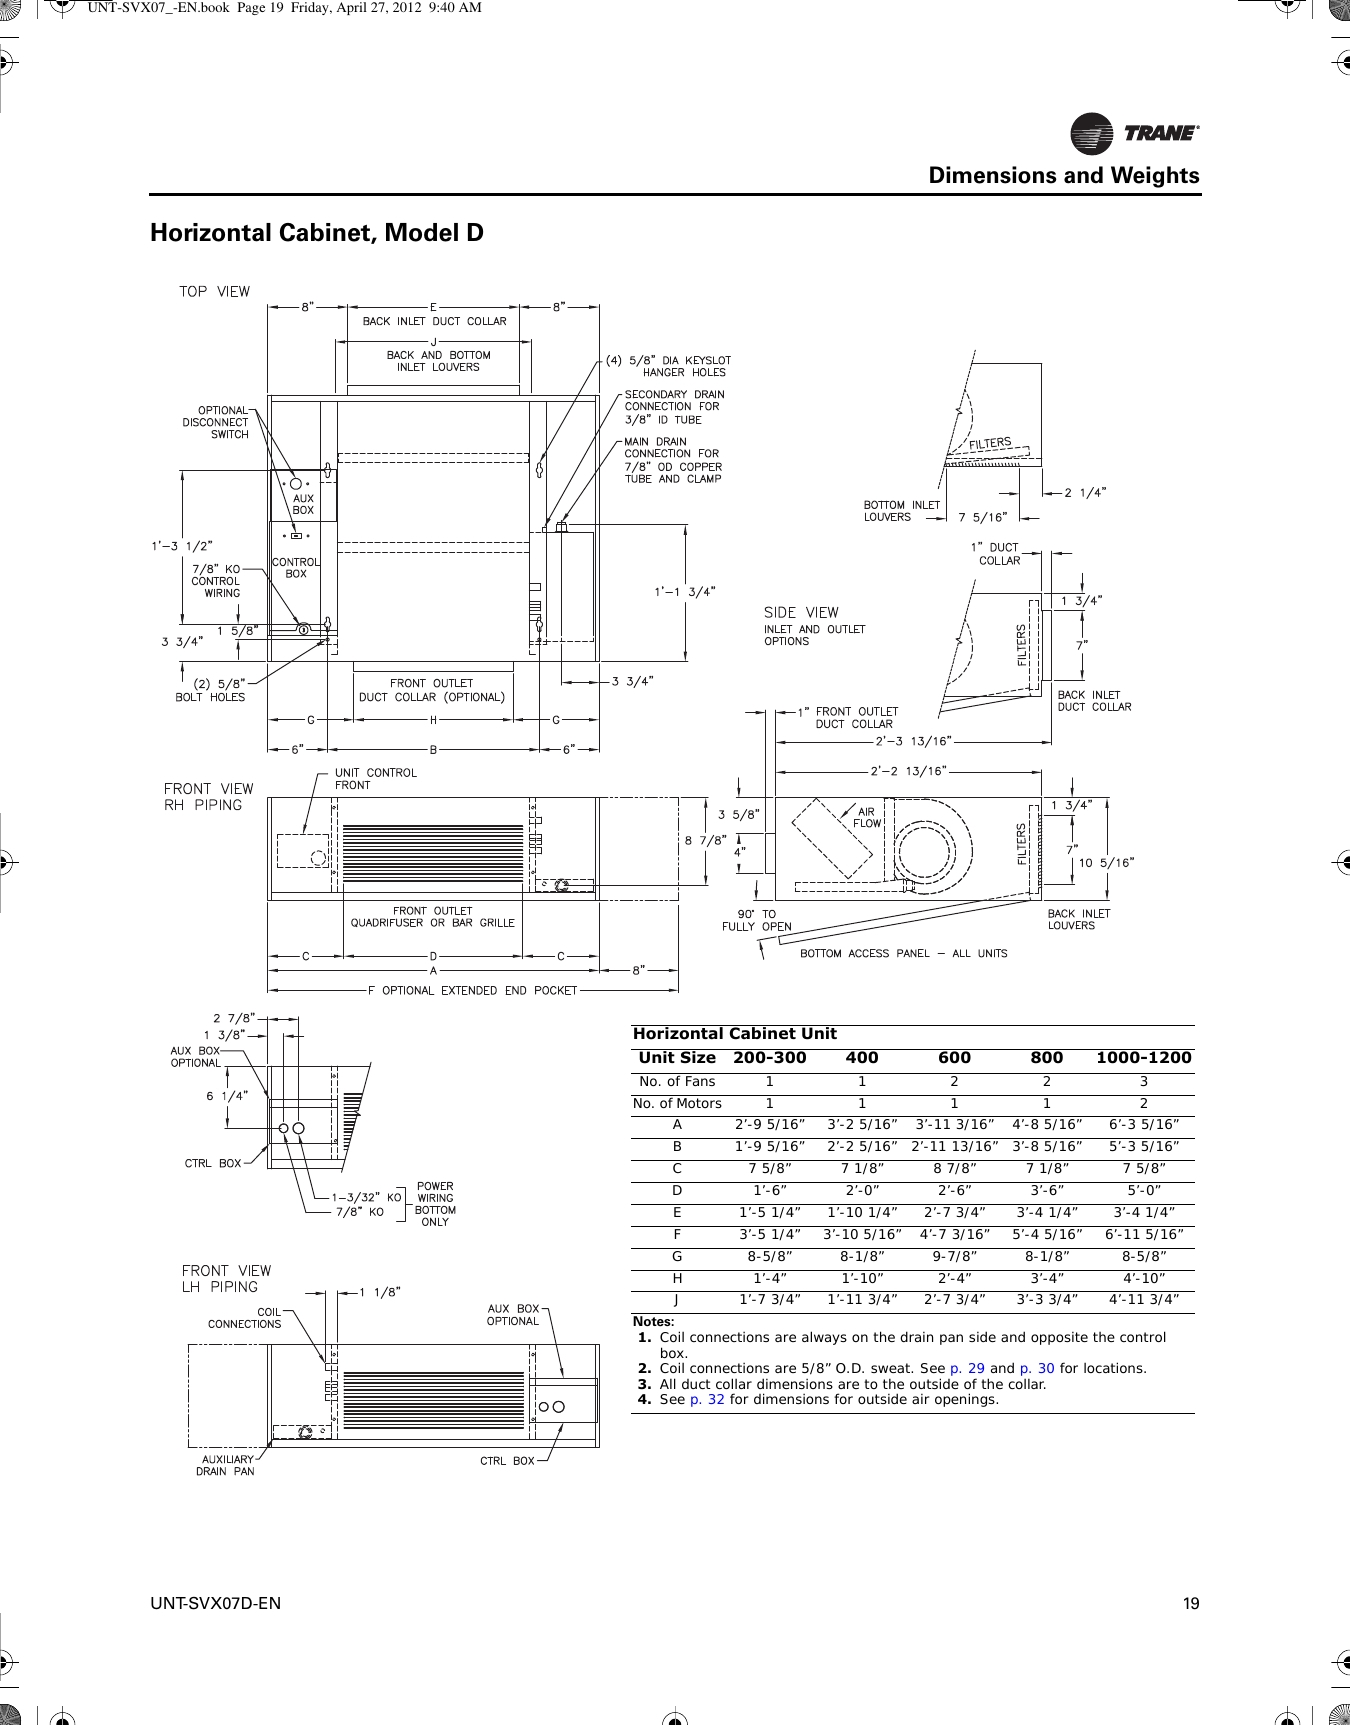 wiring diagrams free download silver series cm hoist wiring diagram | free wiring diagram 12 lead motors wiring diagrams free download diagram